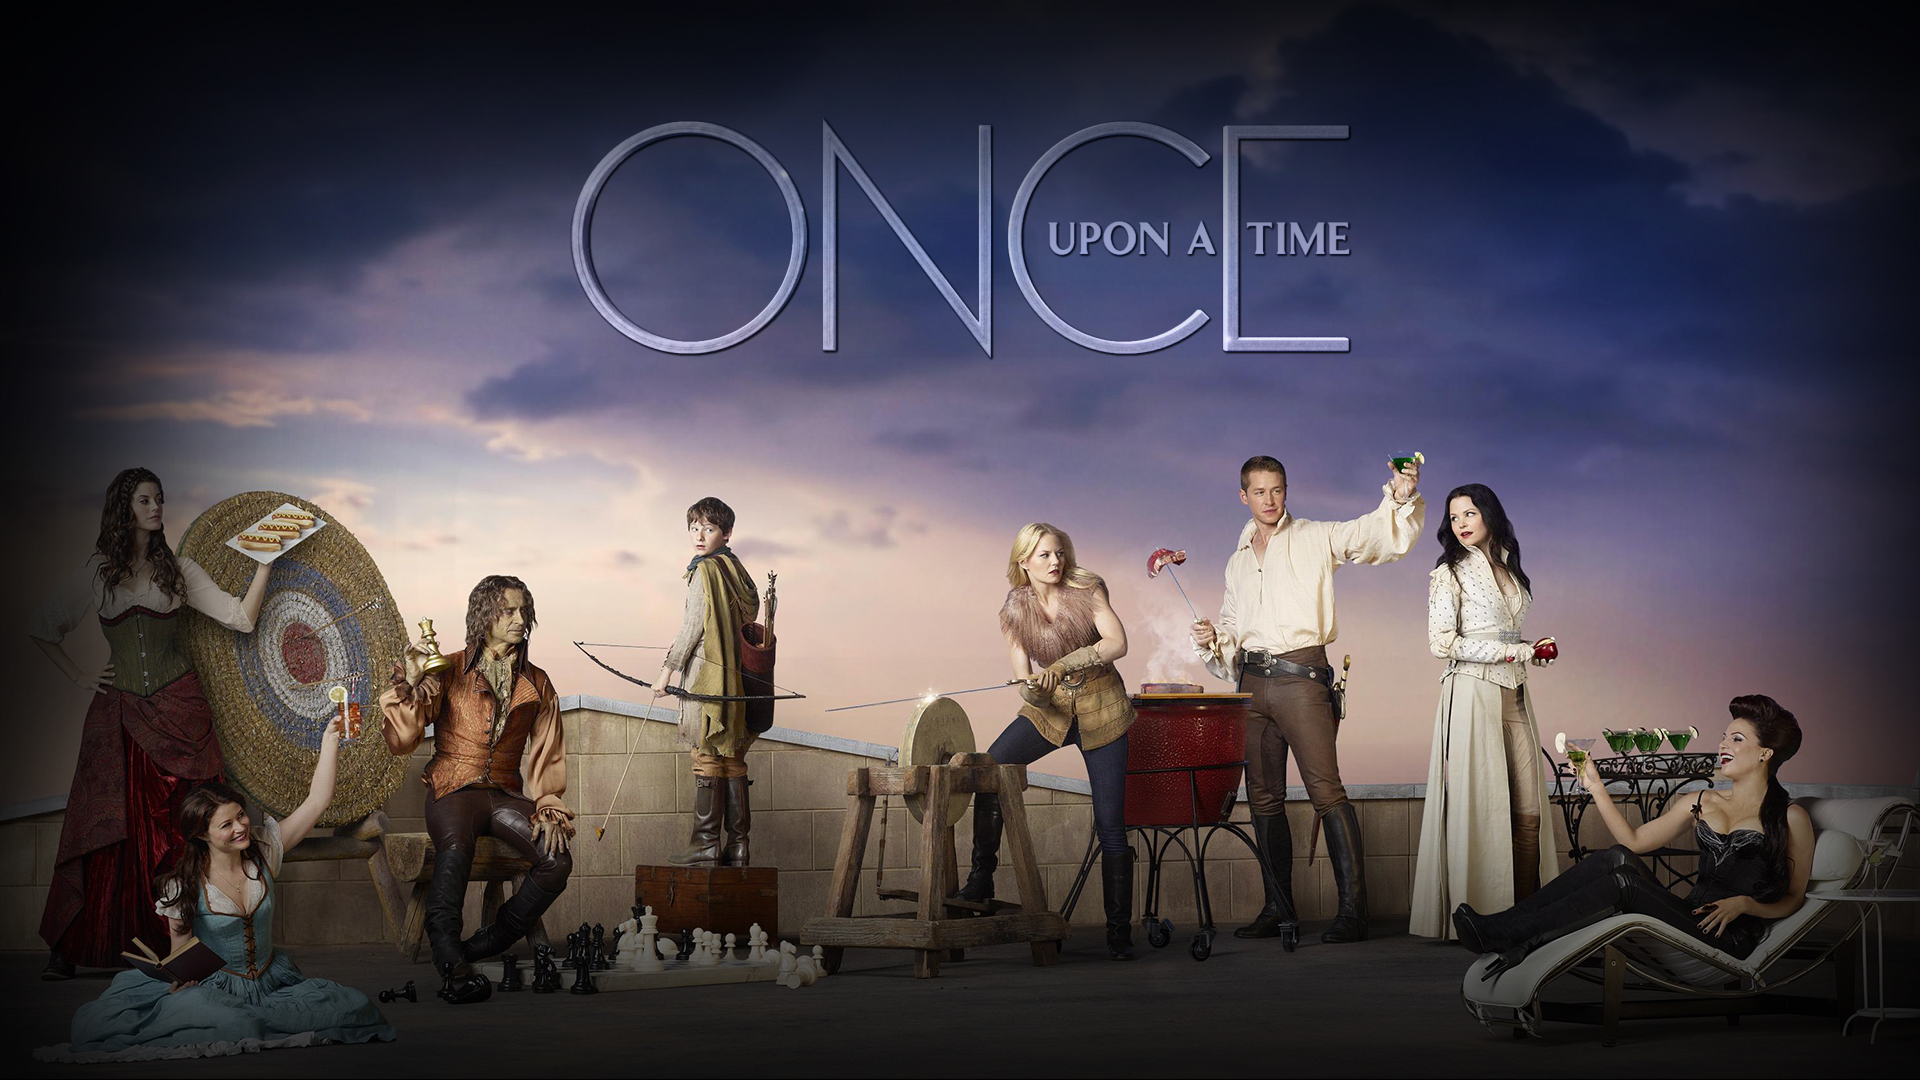 Once Upon A Time HD Wallpapers Hd Wallpapers 1920x1080